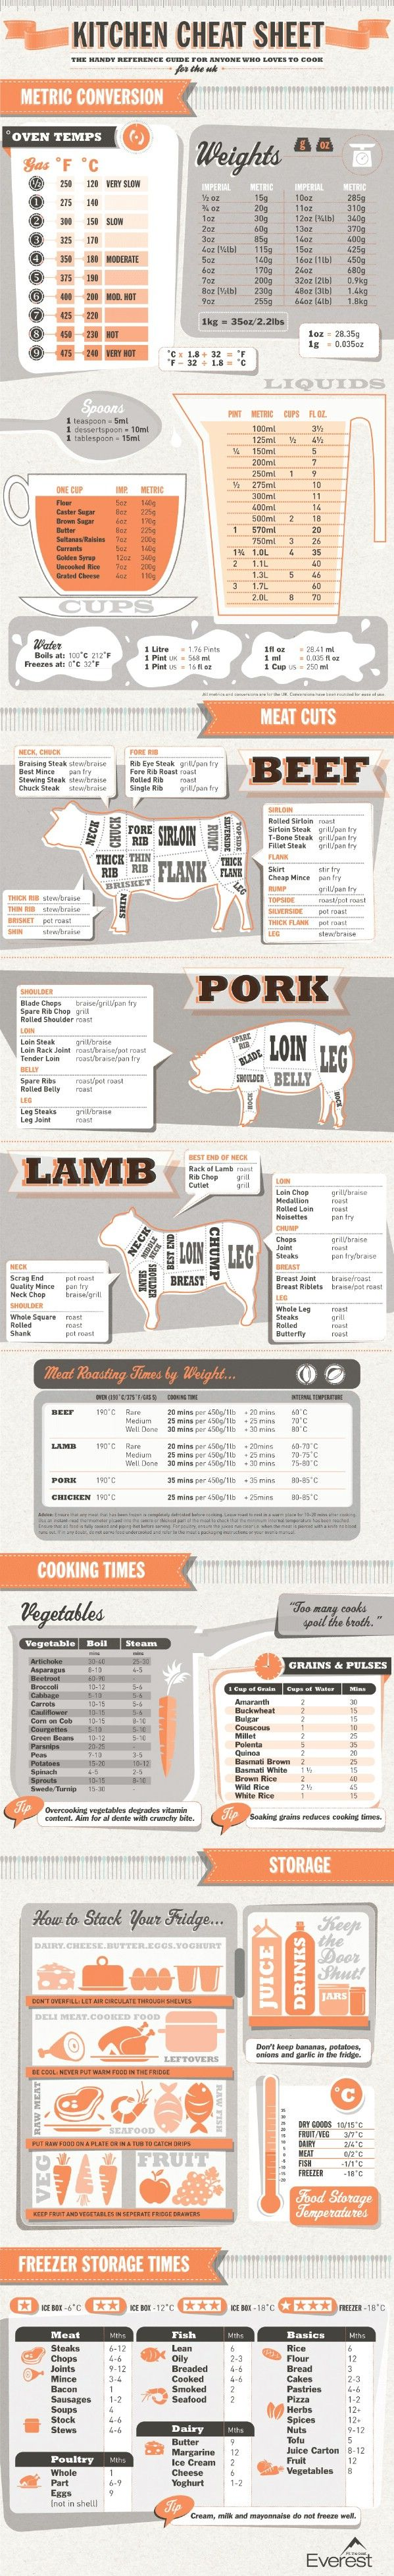 18 Professional Kitchen Infographics to Make Cooking Easier and Faster